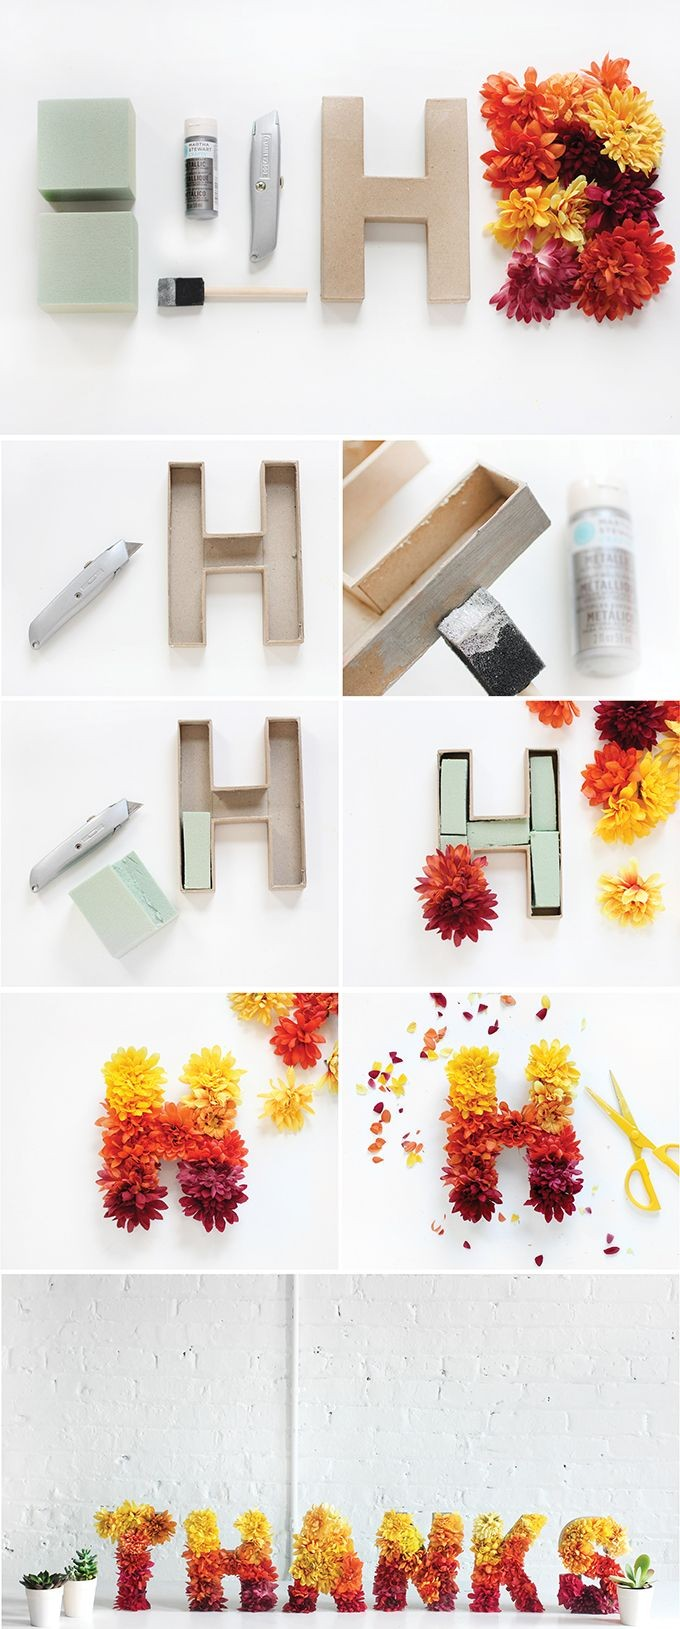 diy-flowers-decor